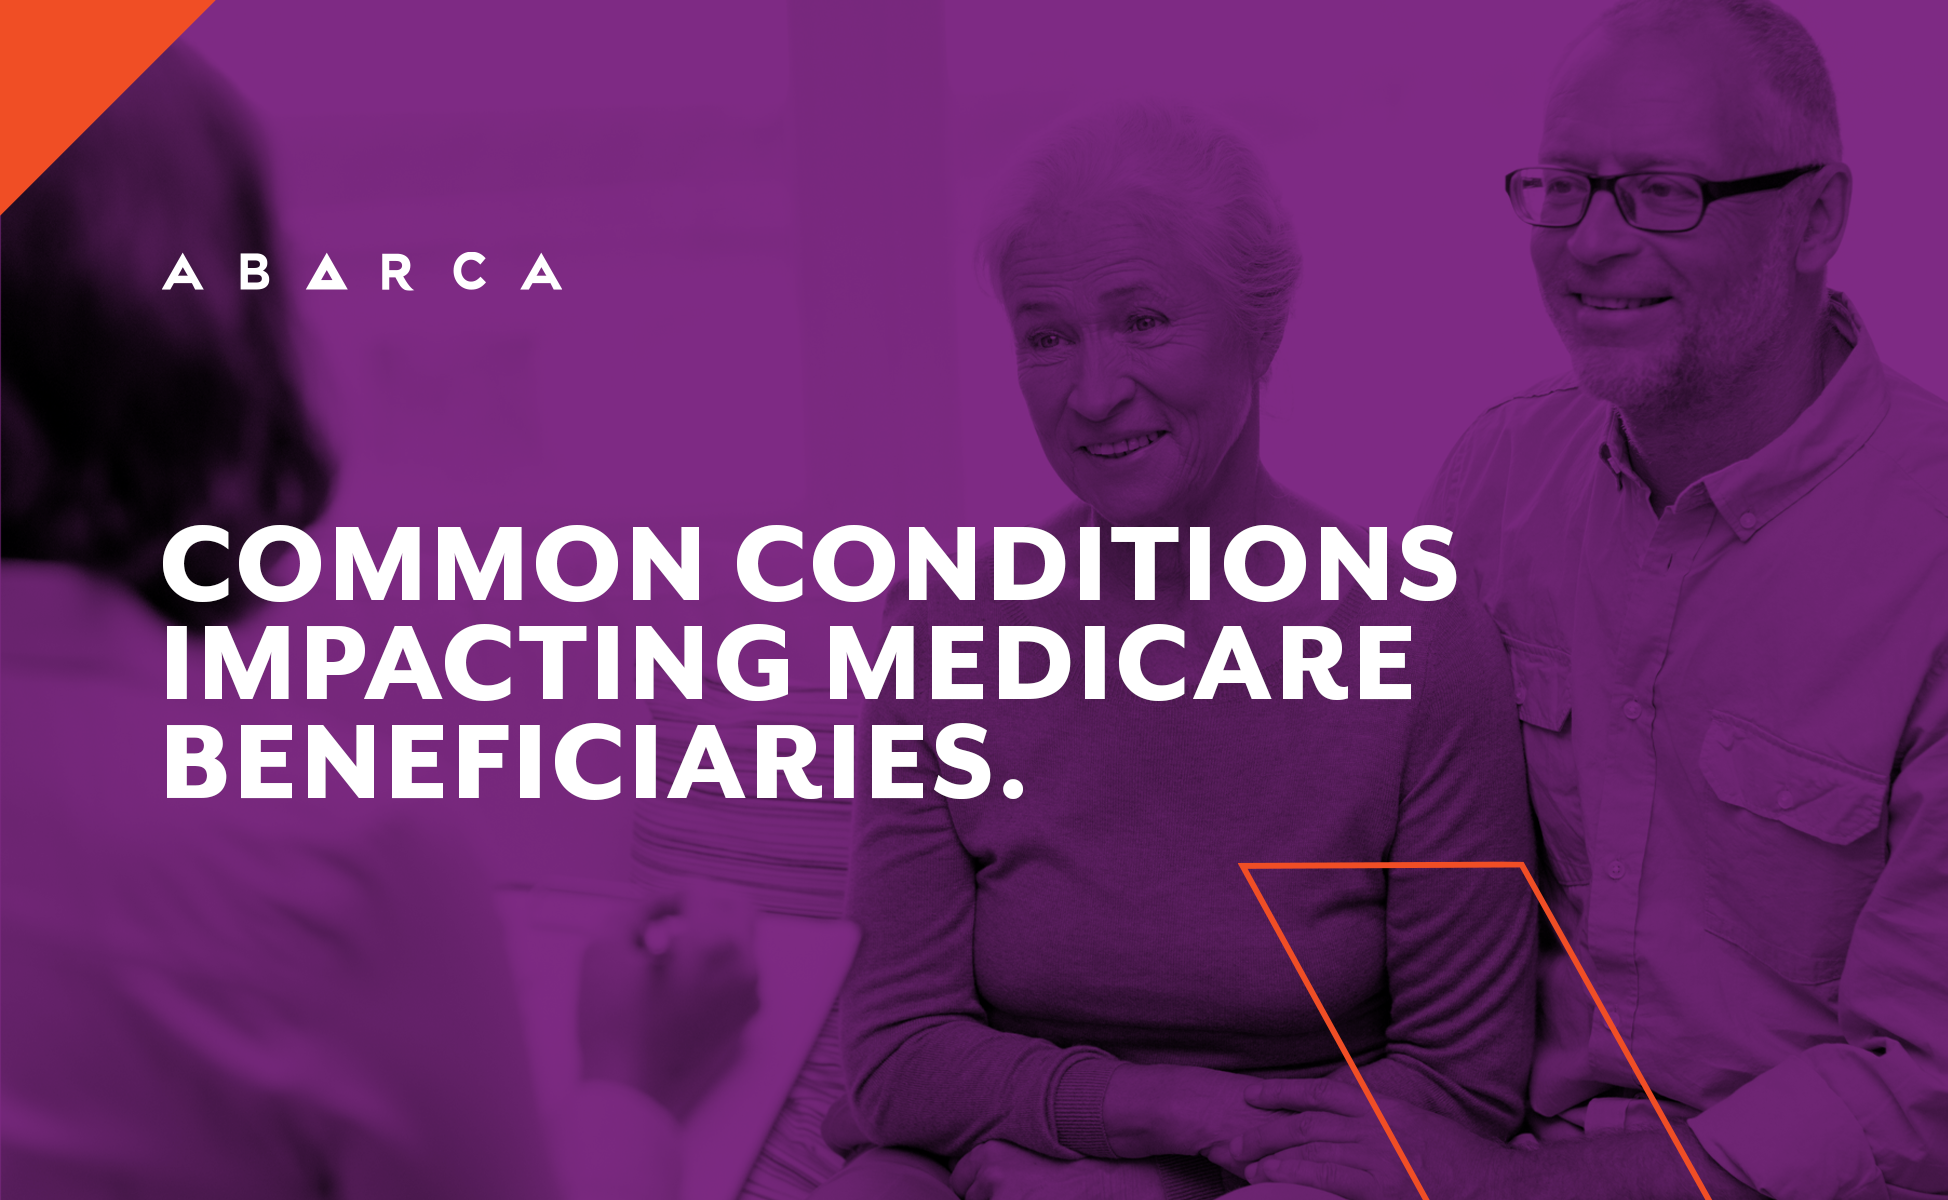 Abarca Health: Common conditions impacting Medicare beneficiaries